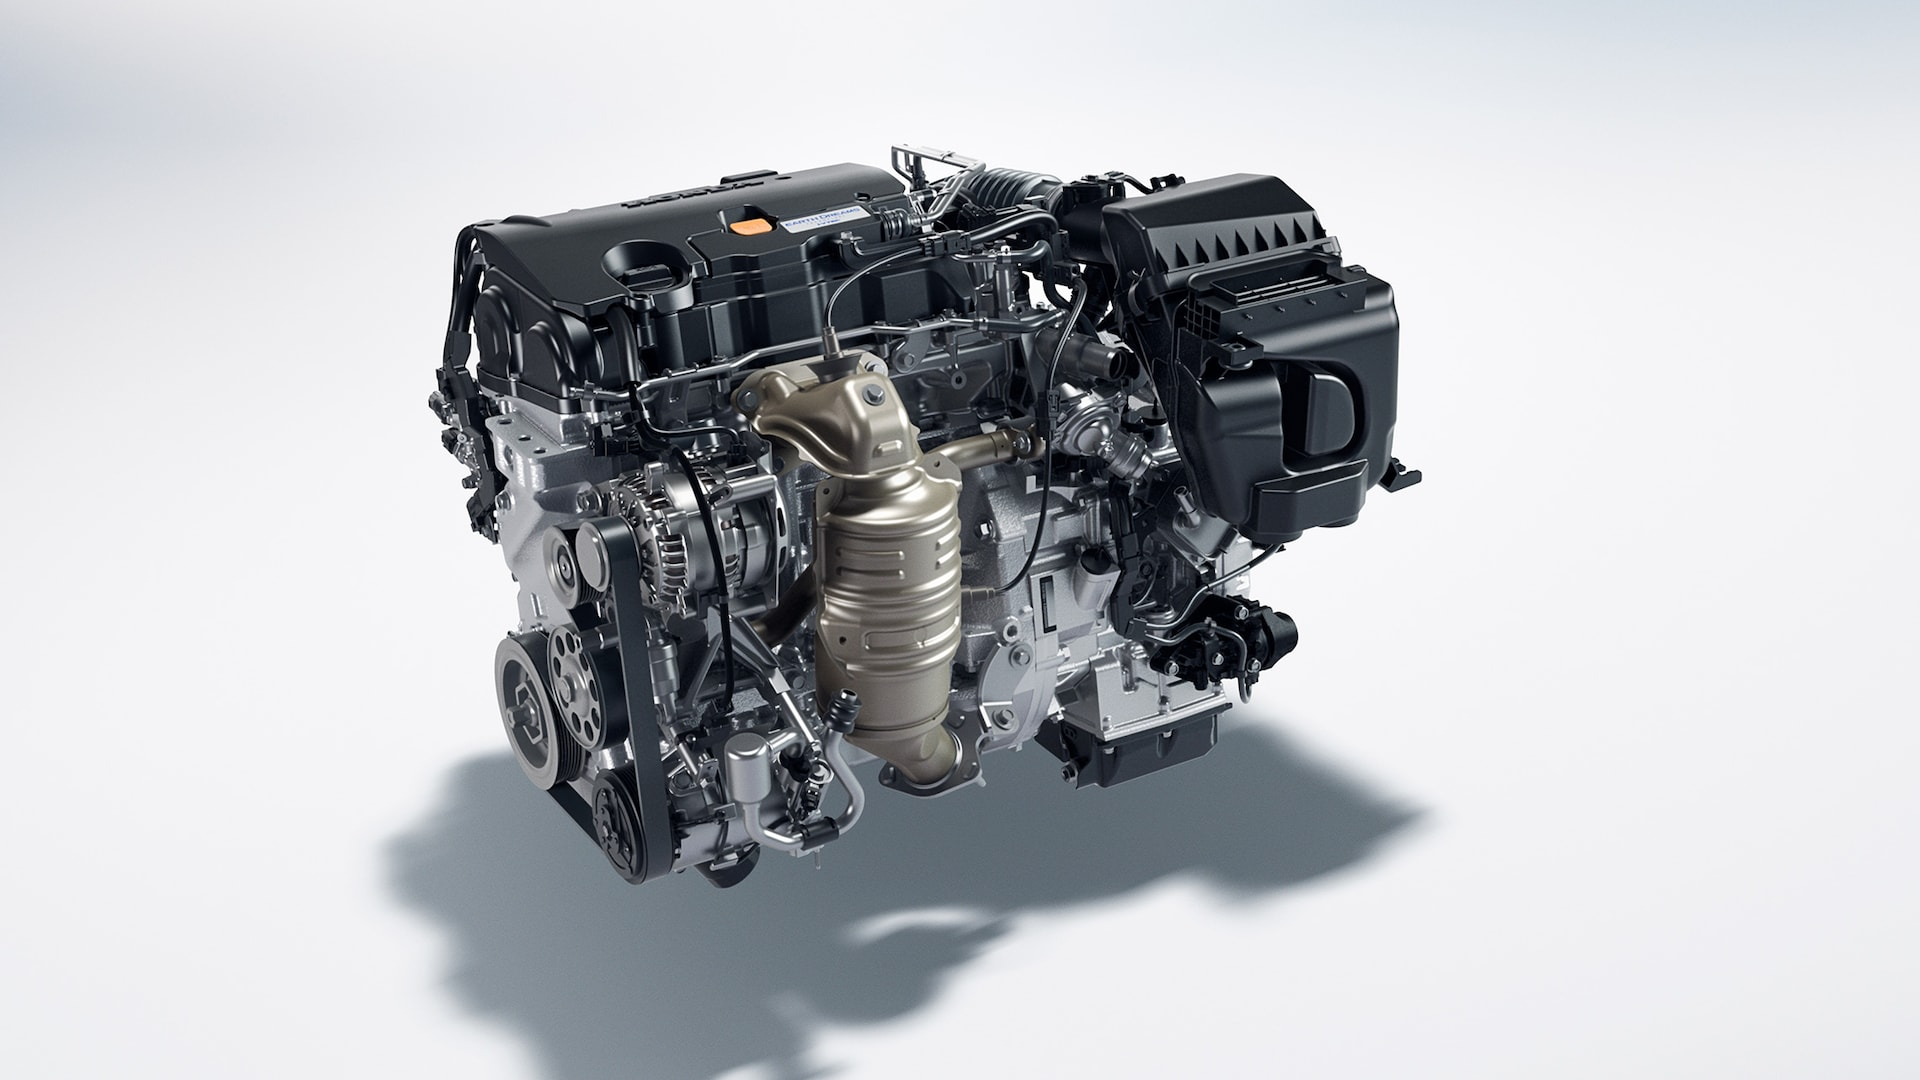 2.0-liter, 4-cylinder engine detail in the 2021 Honda Civic LX Sedan.